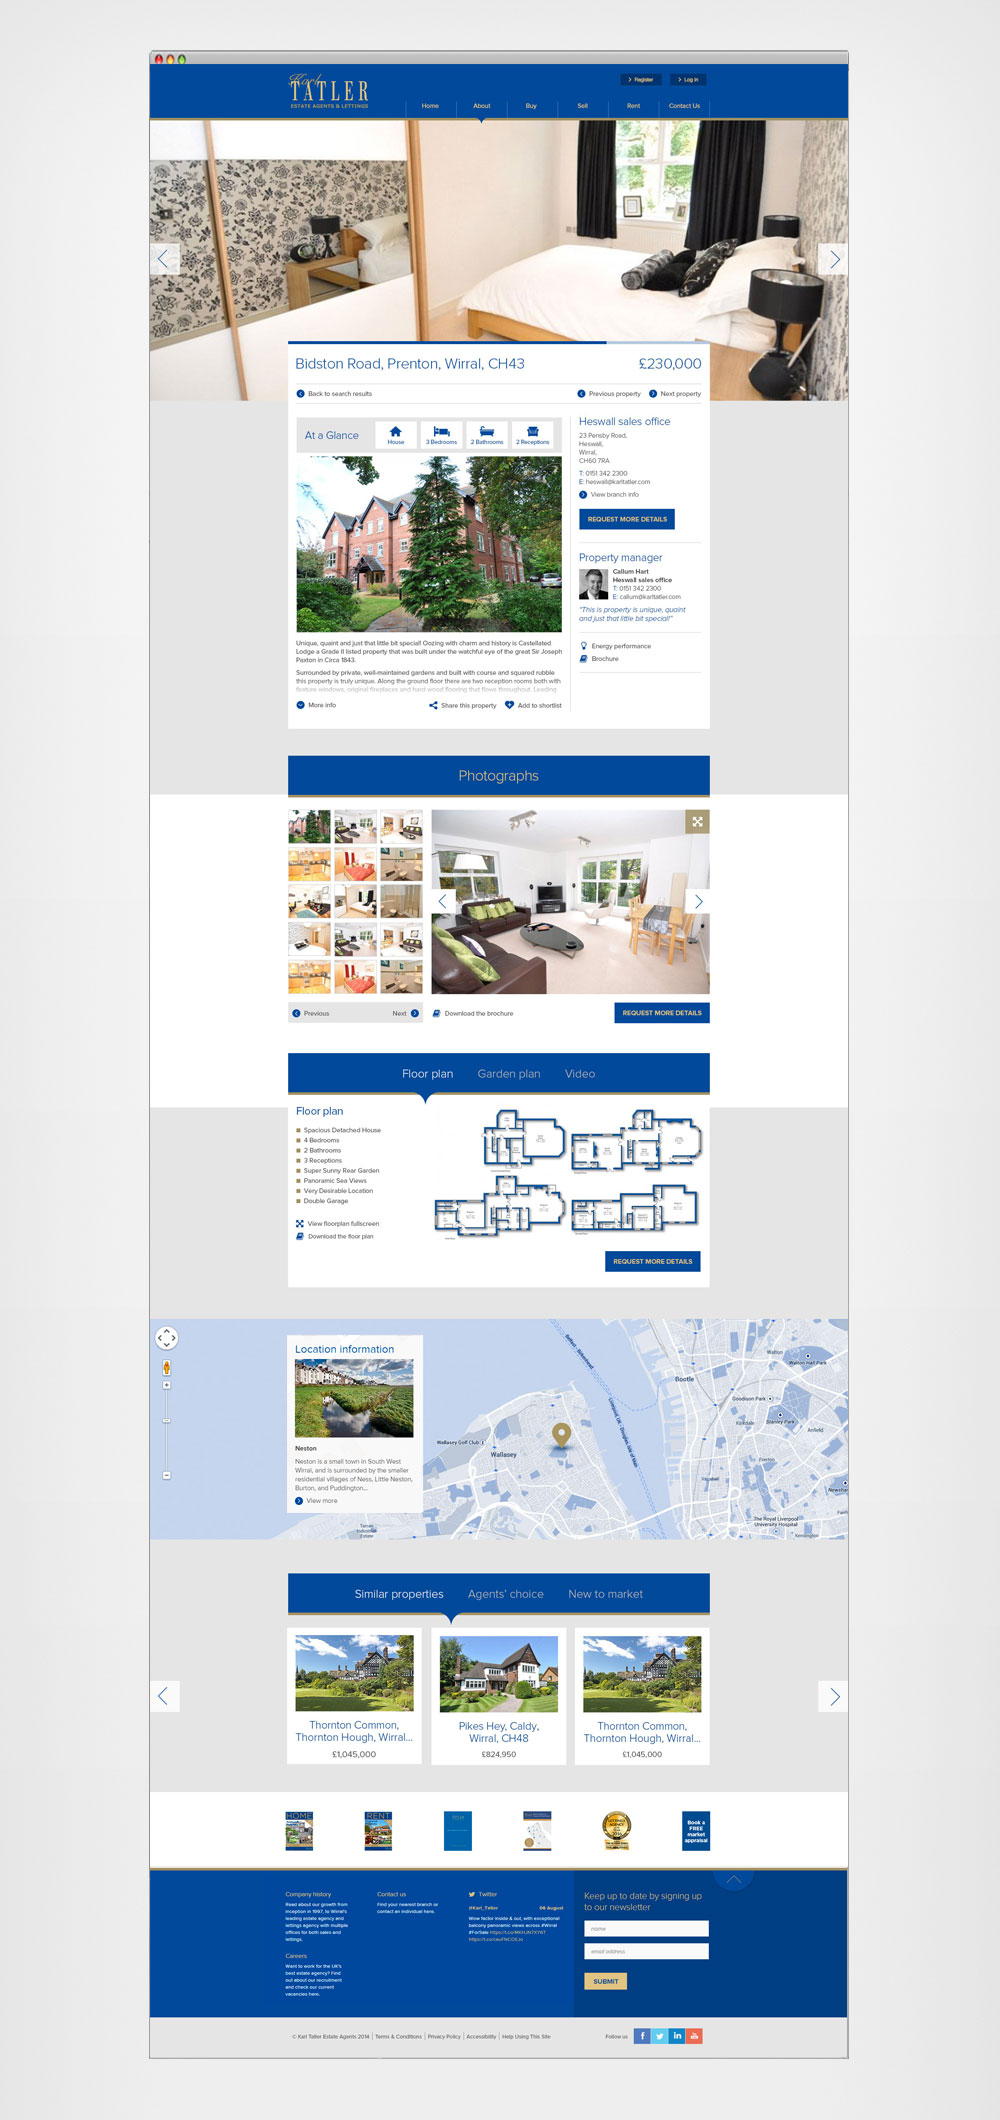 Properties detail page